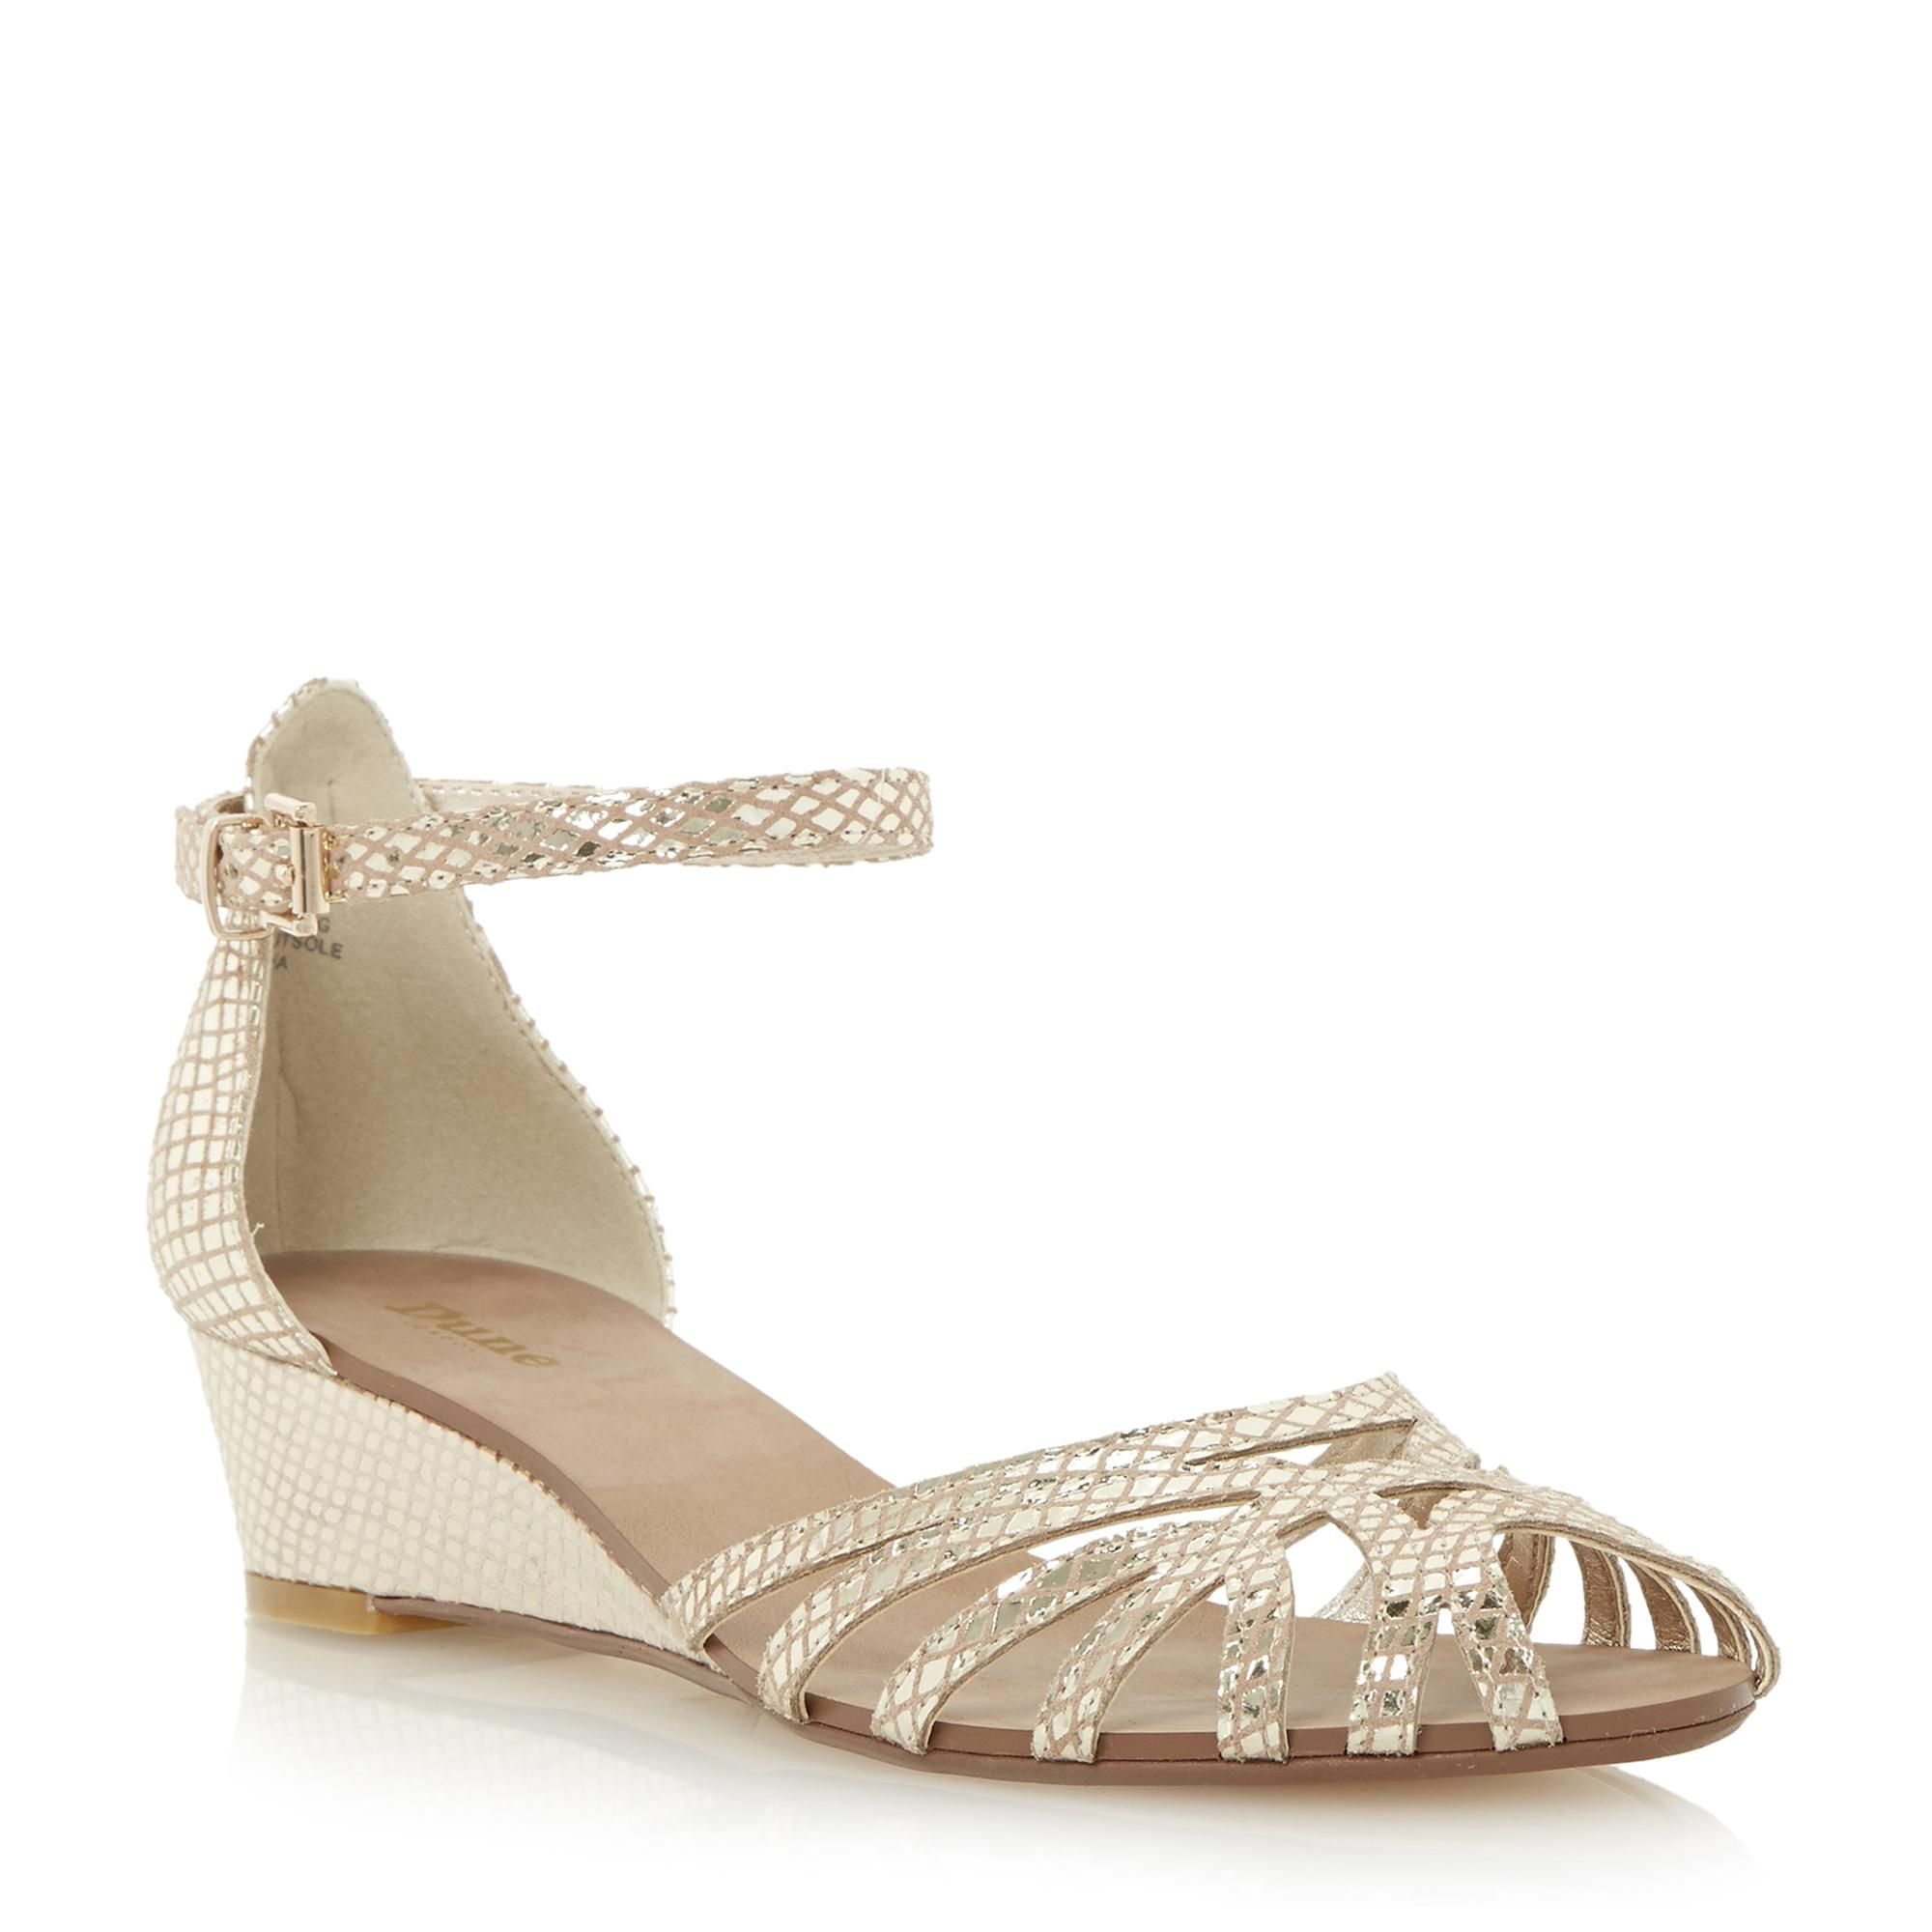 DUNE LADIES KNIGHTLY Caged Front Low Wedge Sandal champagne